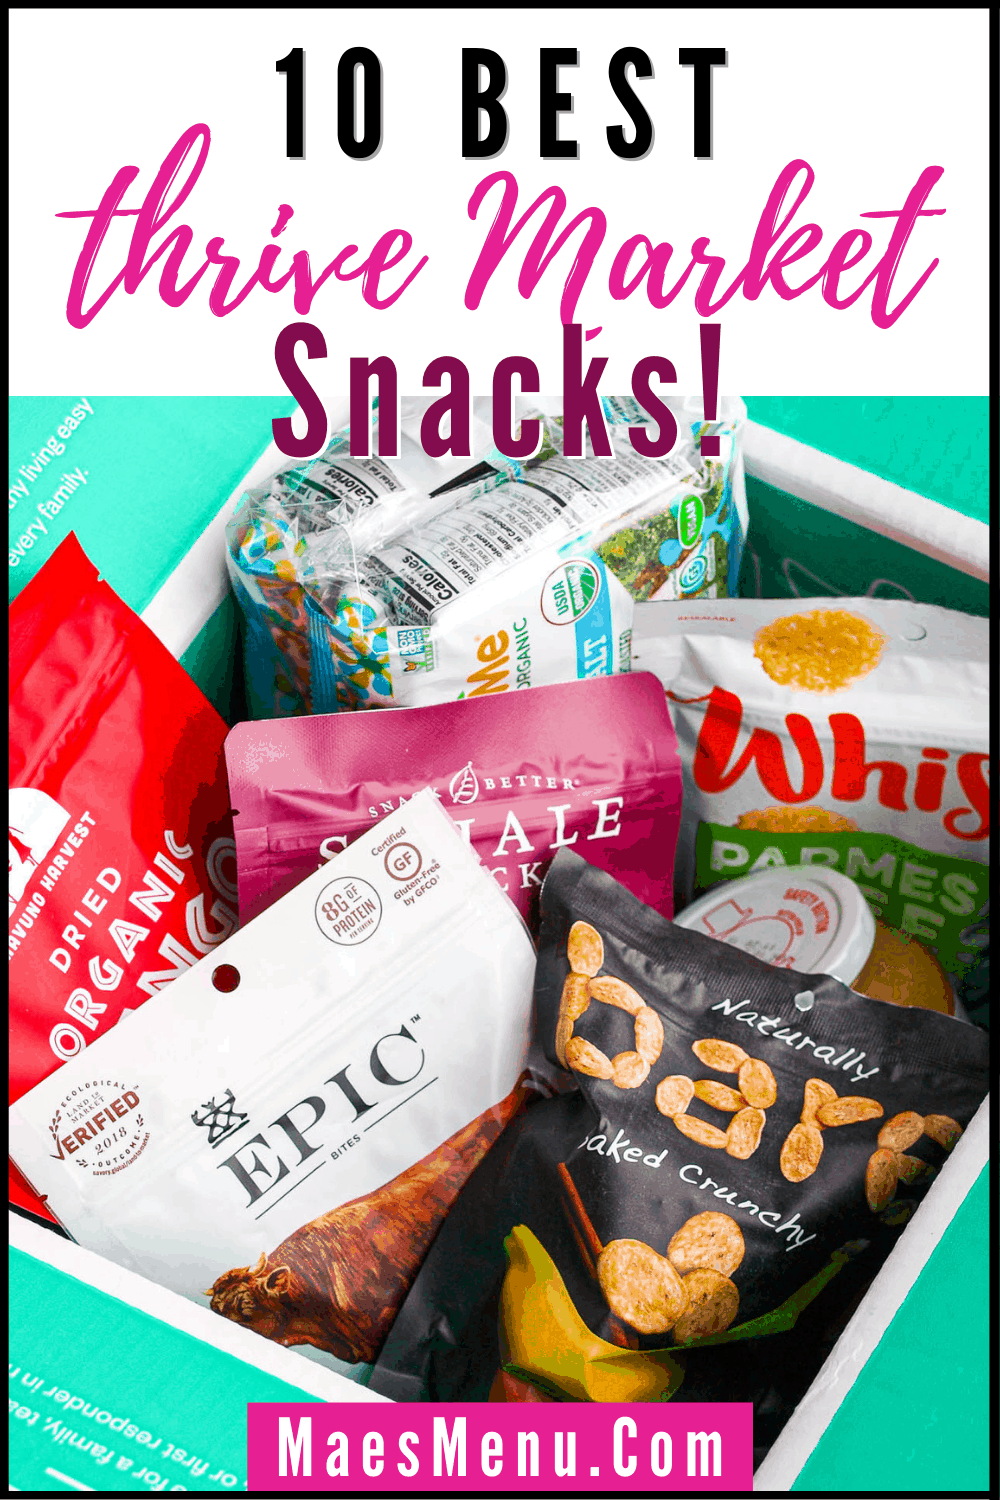 Pinterest pin for 10 best thrive market snacks with a photo of a thrive market box full of snacks